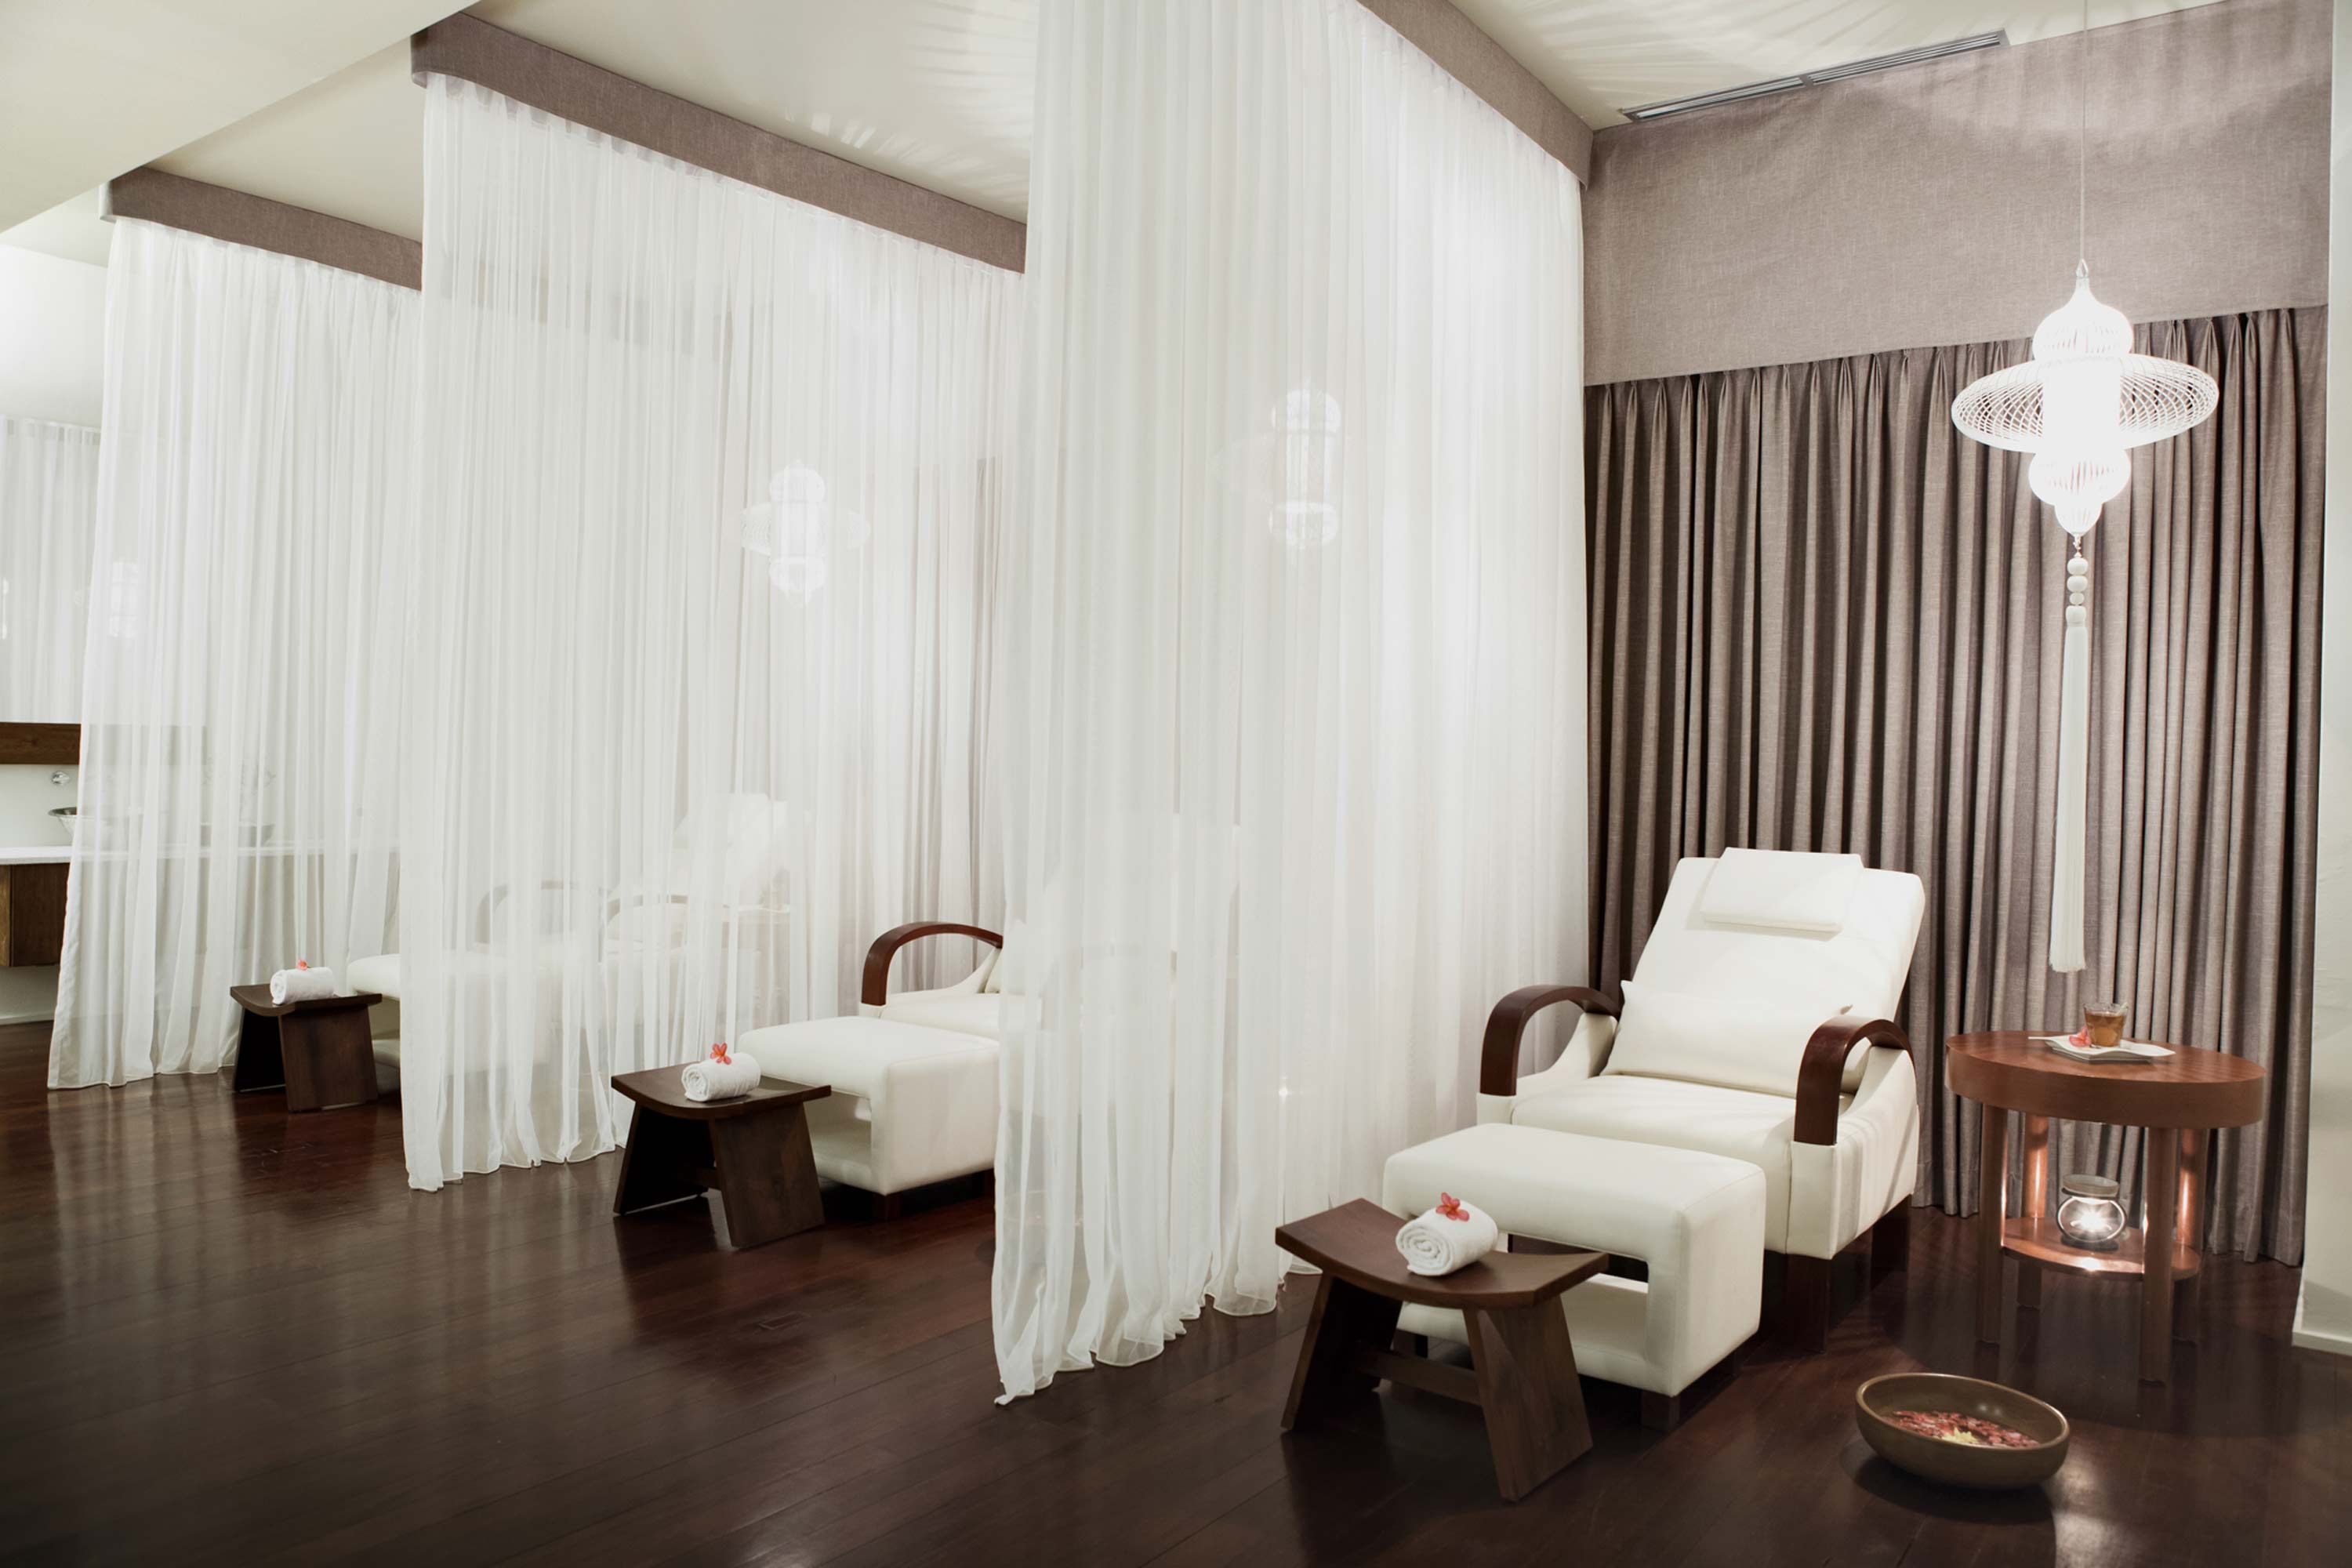 Complimentary Gym And Wellness Sessions For Members Guests In House